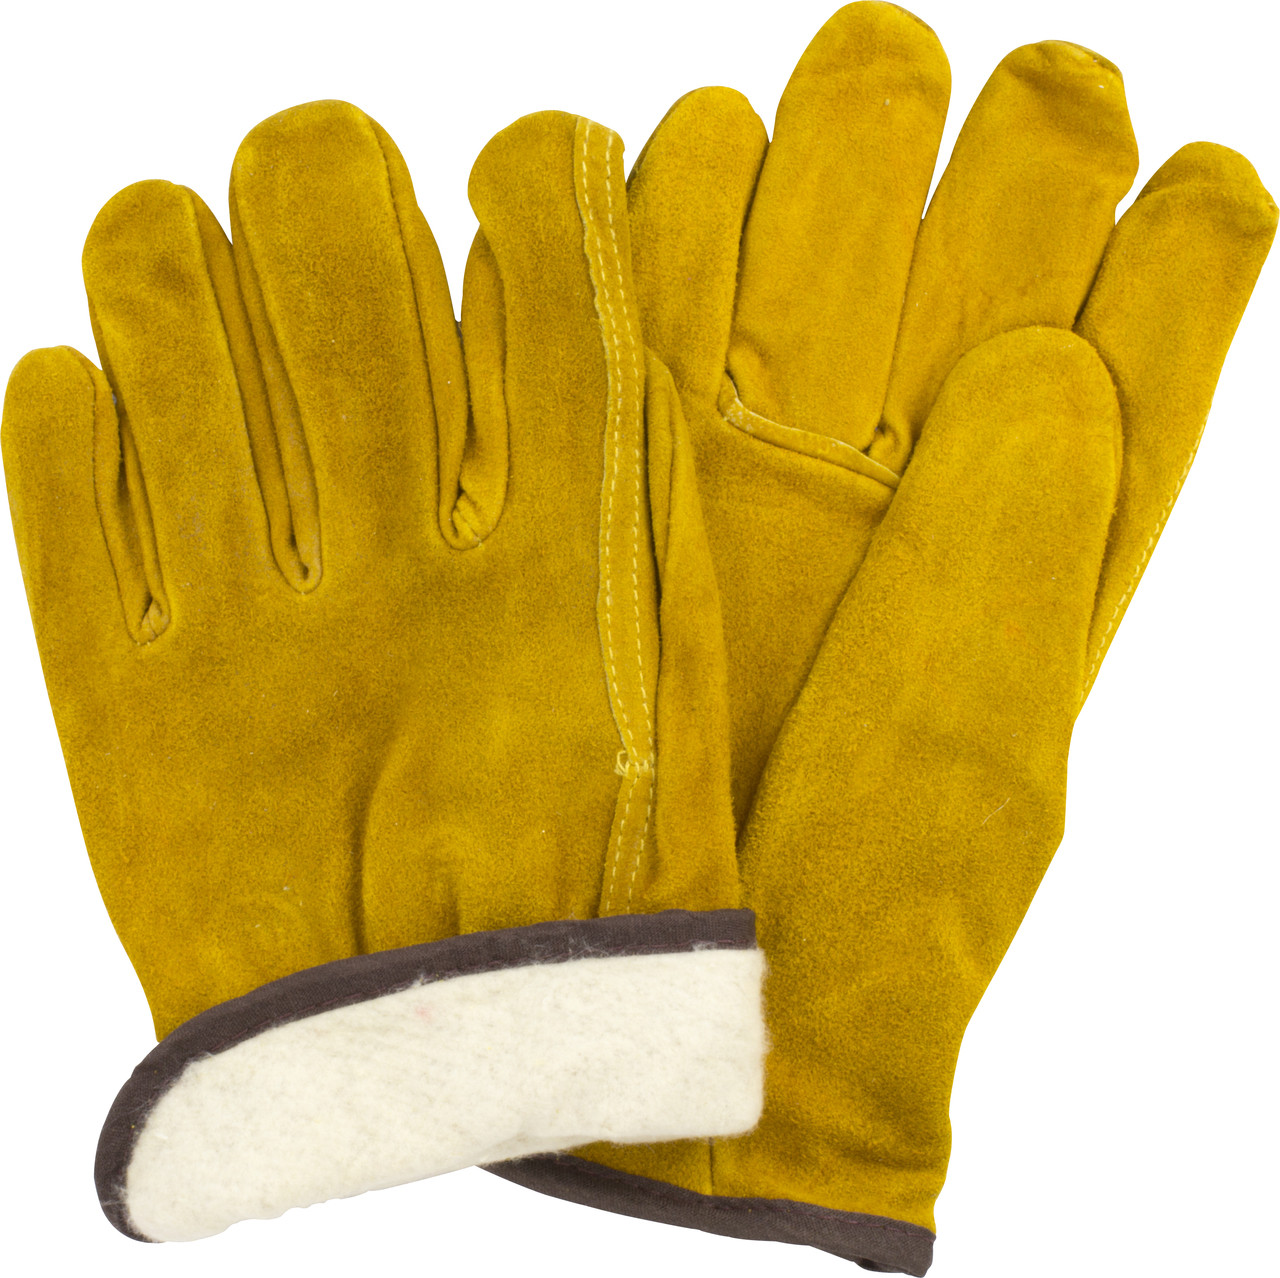 Split Cow Leather Drivers, Straight Thumb, Flannel Lining, 1DZ Pair/Bag